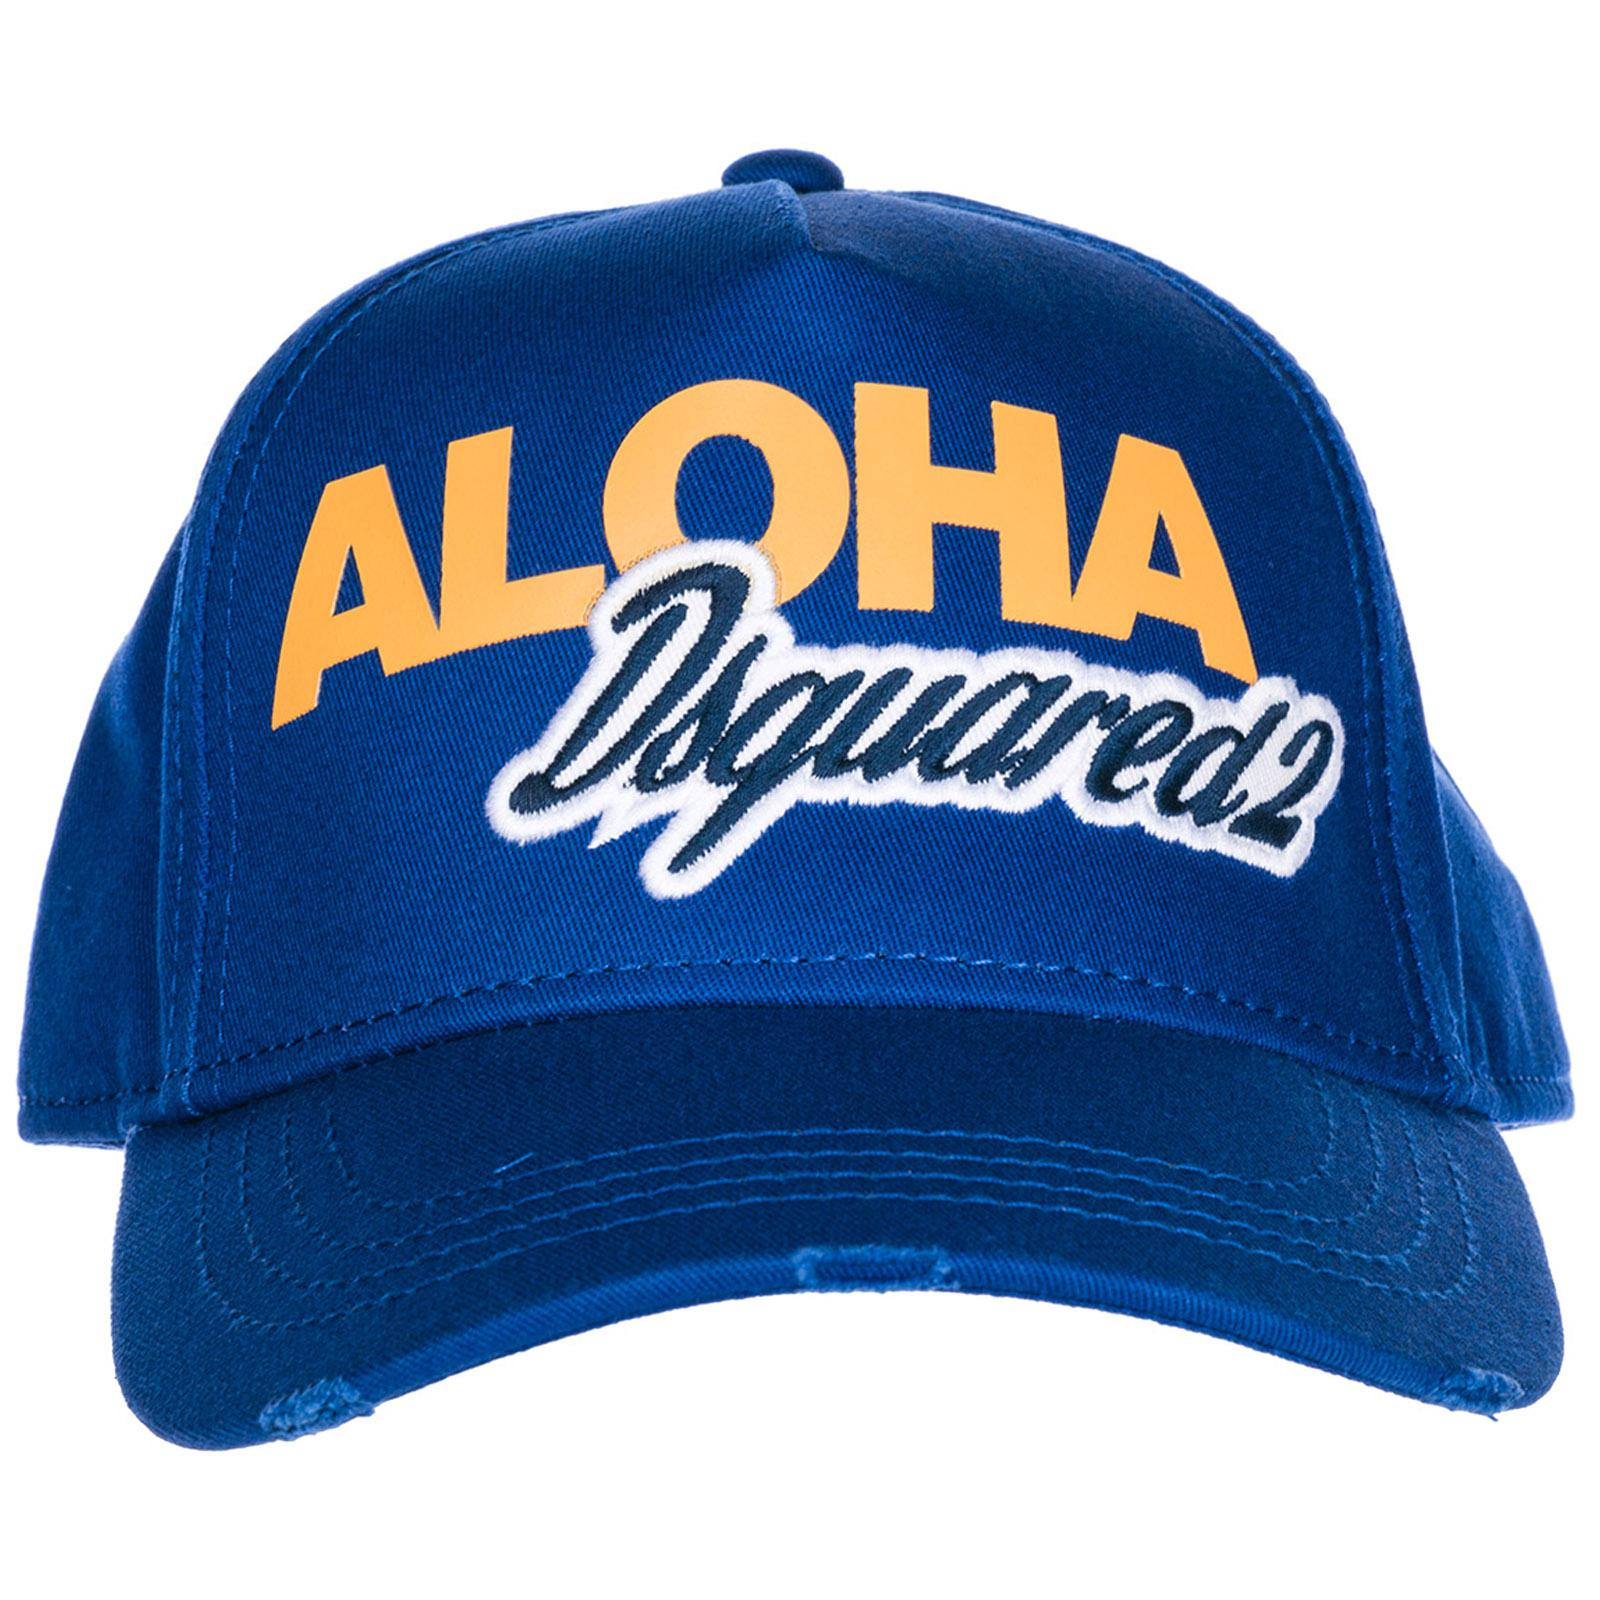 bee6c8542392e DSquared² Adjustable Cotton Hat Baseball Cap Aloha Baseball in Blue ...